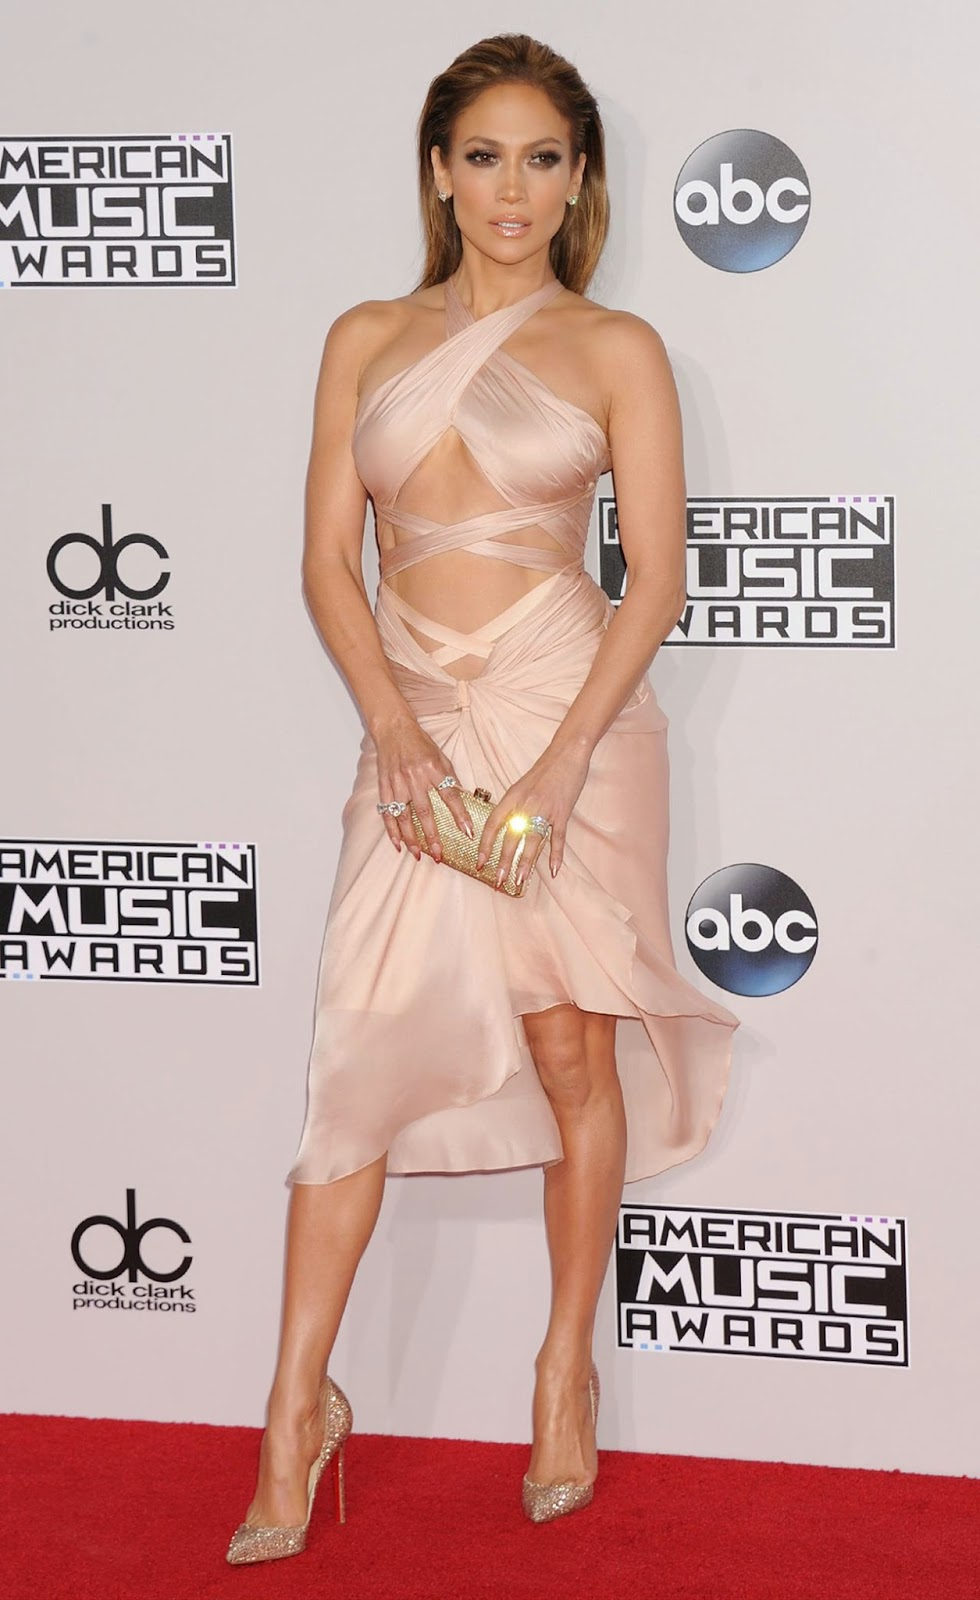 Jennifer Lopez shows off abs in a Reem Acra dress at the 2014 American Music Awards